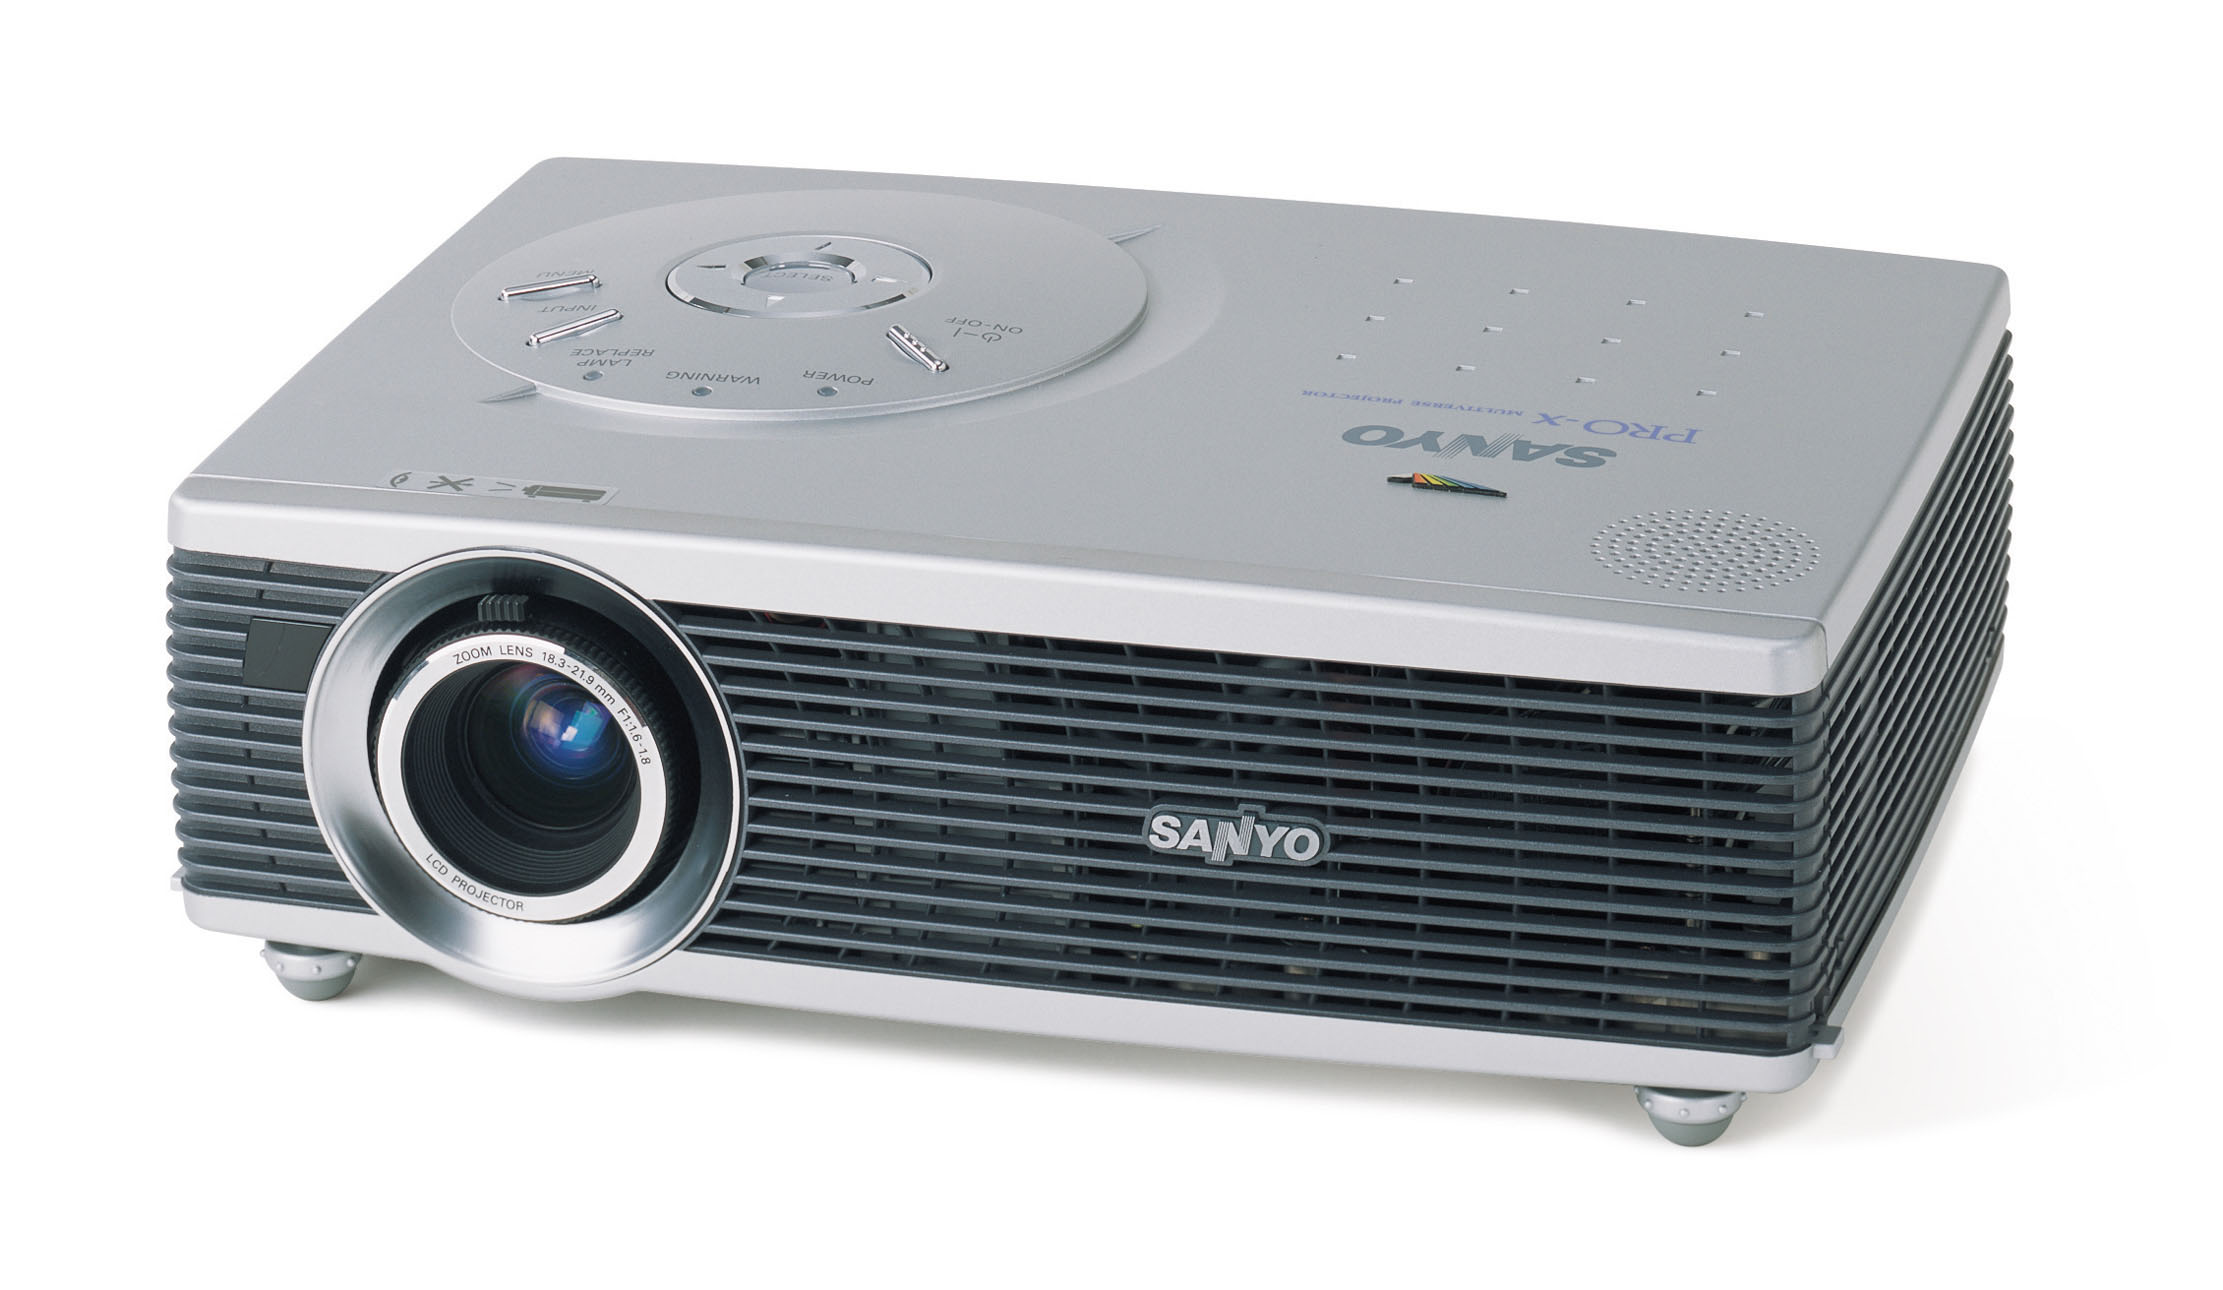 product sanyo plc sw30 3lcd projector used sanyo plv-z2 projector manual sanyo pdg-dwl2500 projector manual